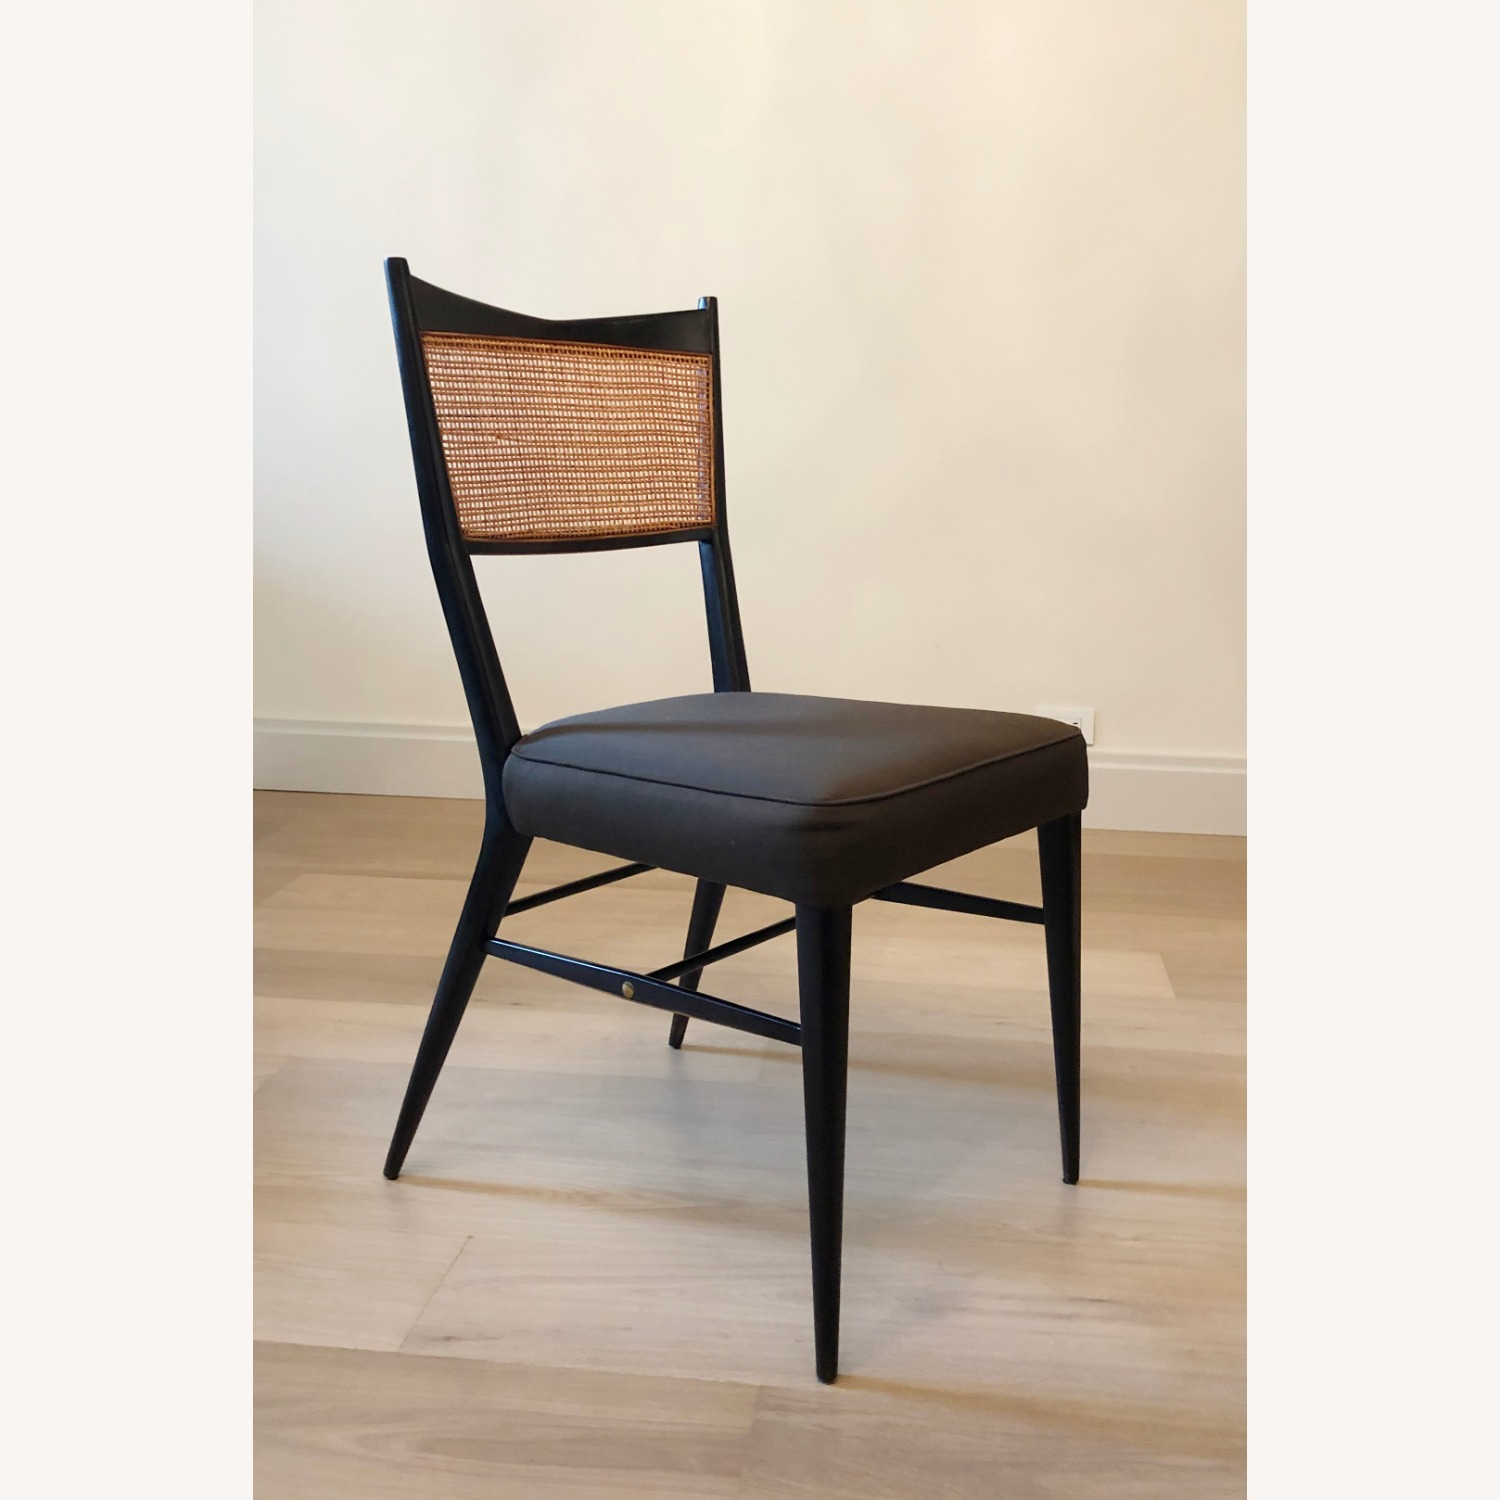 Paul McCobb Irwin Collection 4 Dining Chairs - image-2